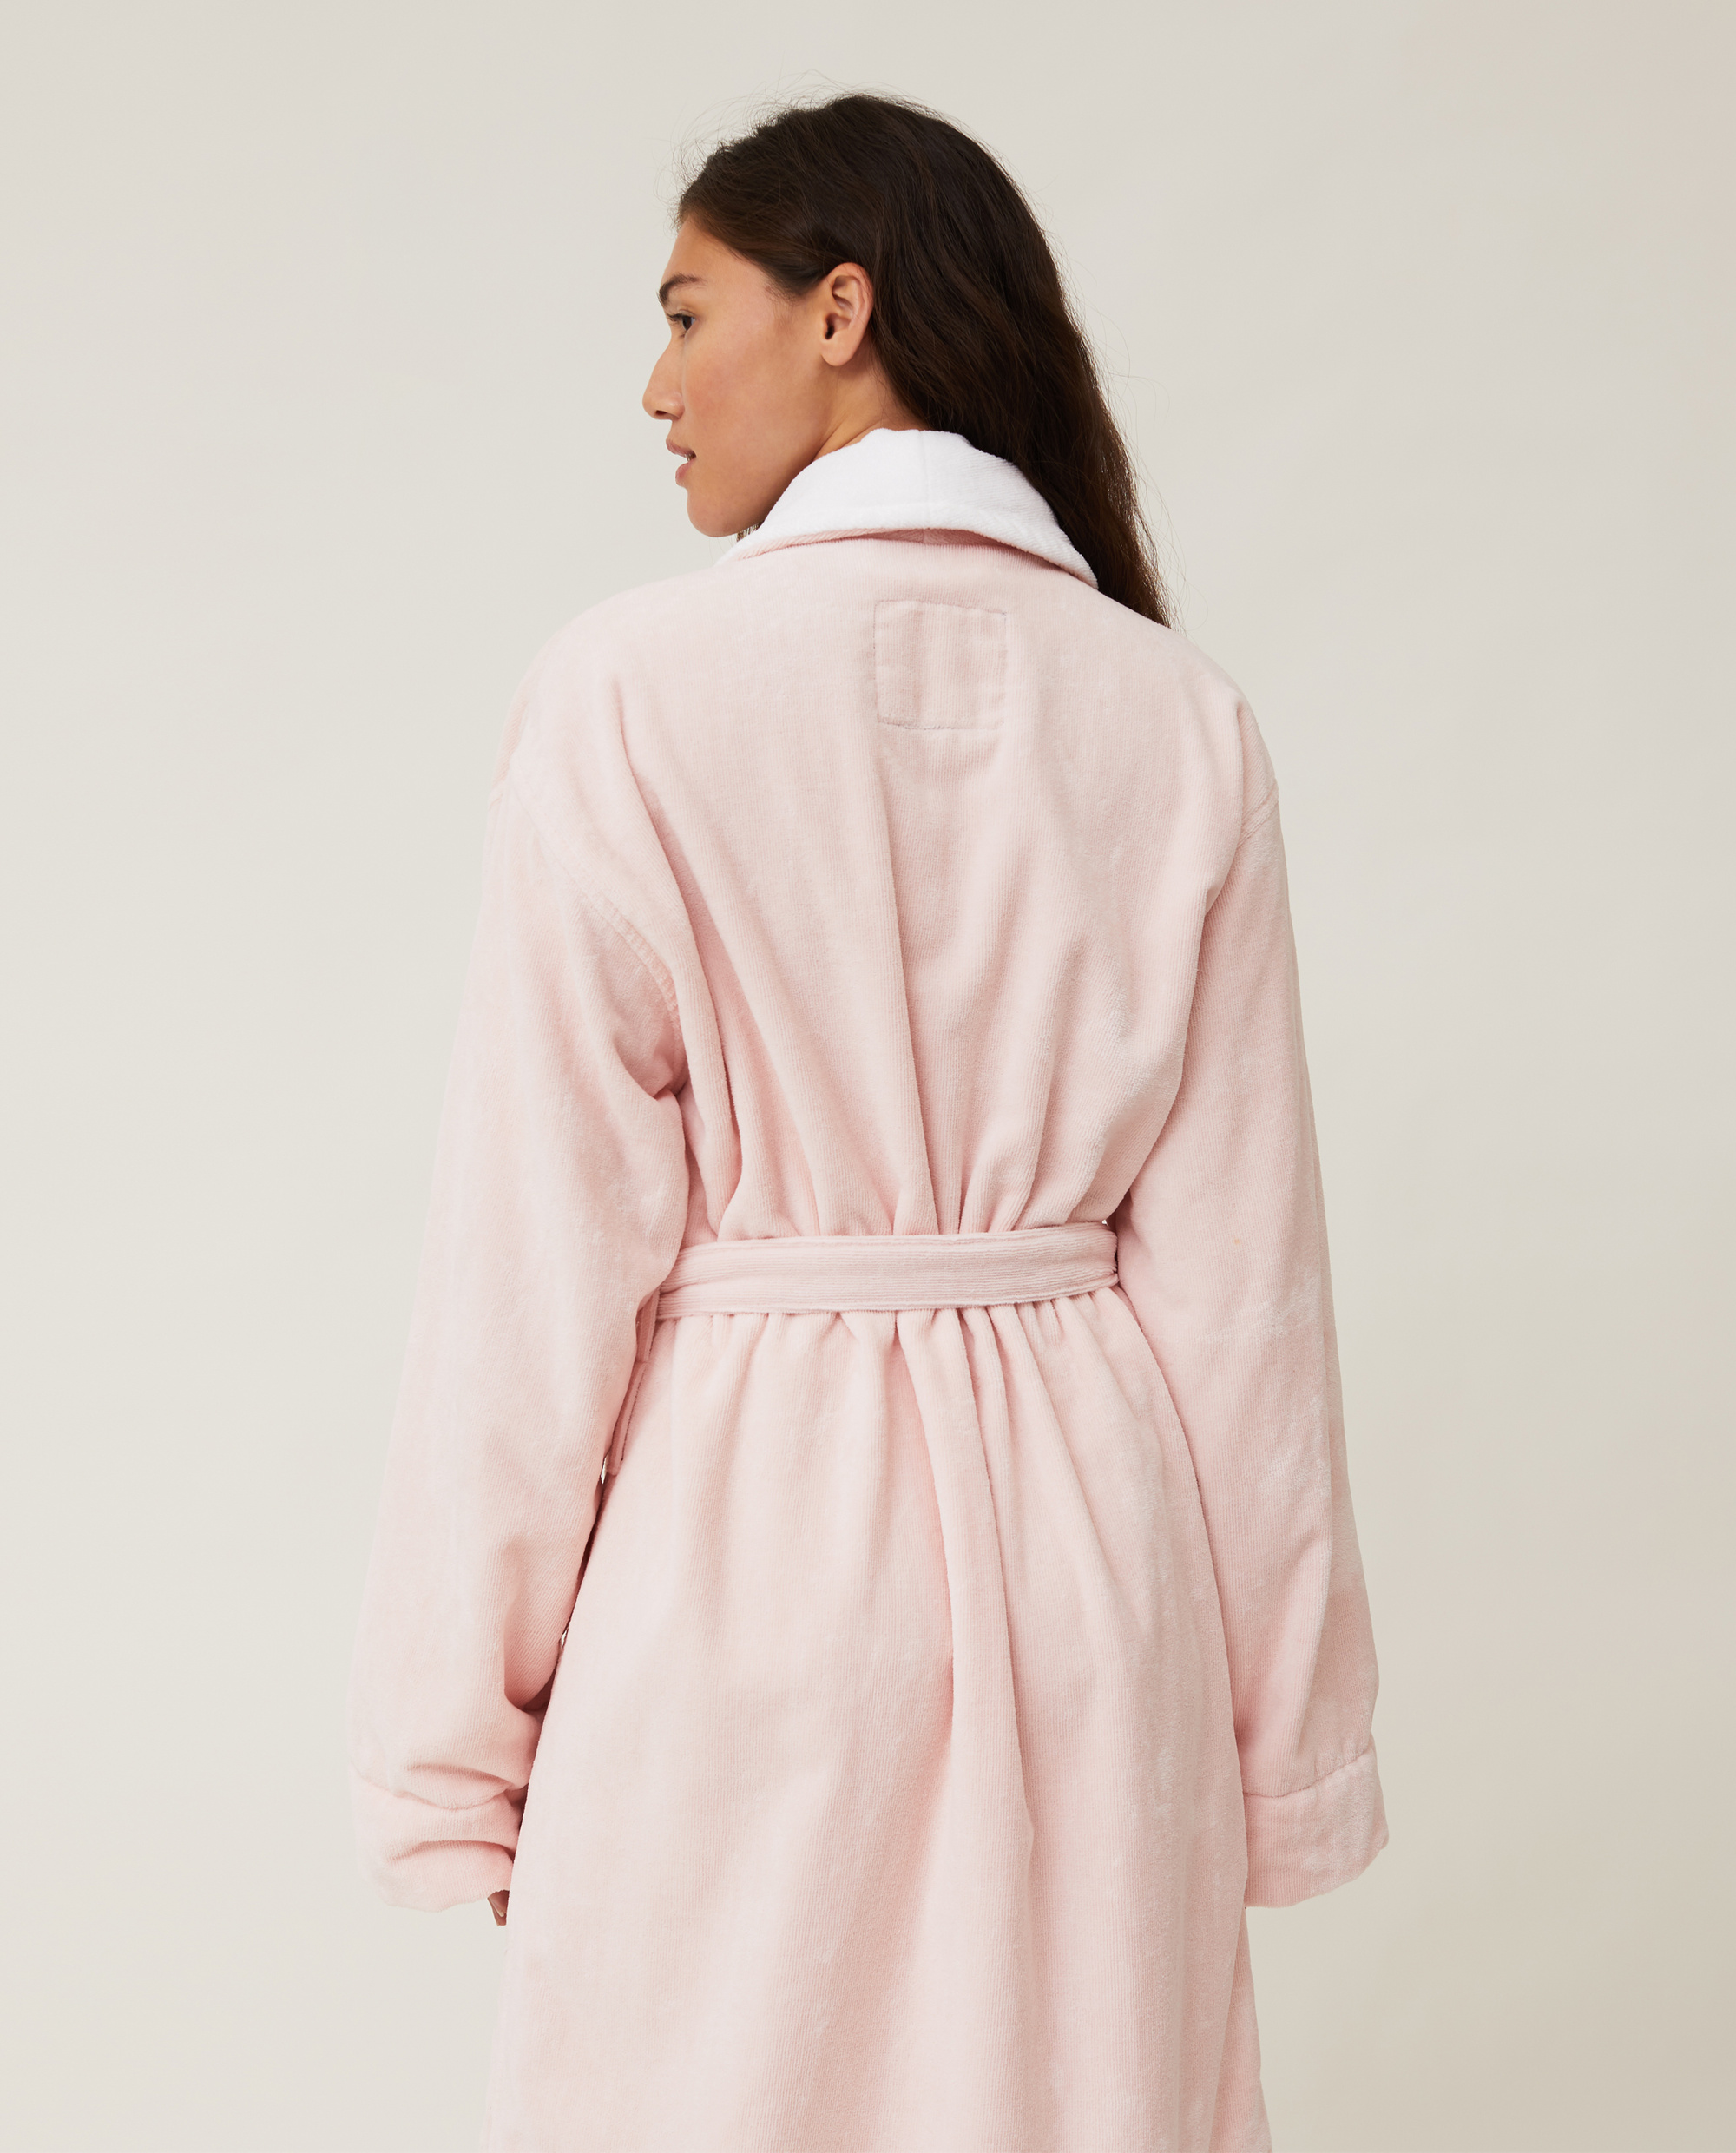 Unisex Cotton Velour Contrast Robe, Pink/White